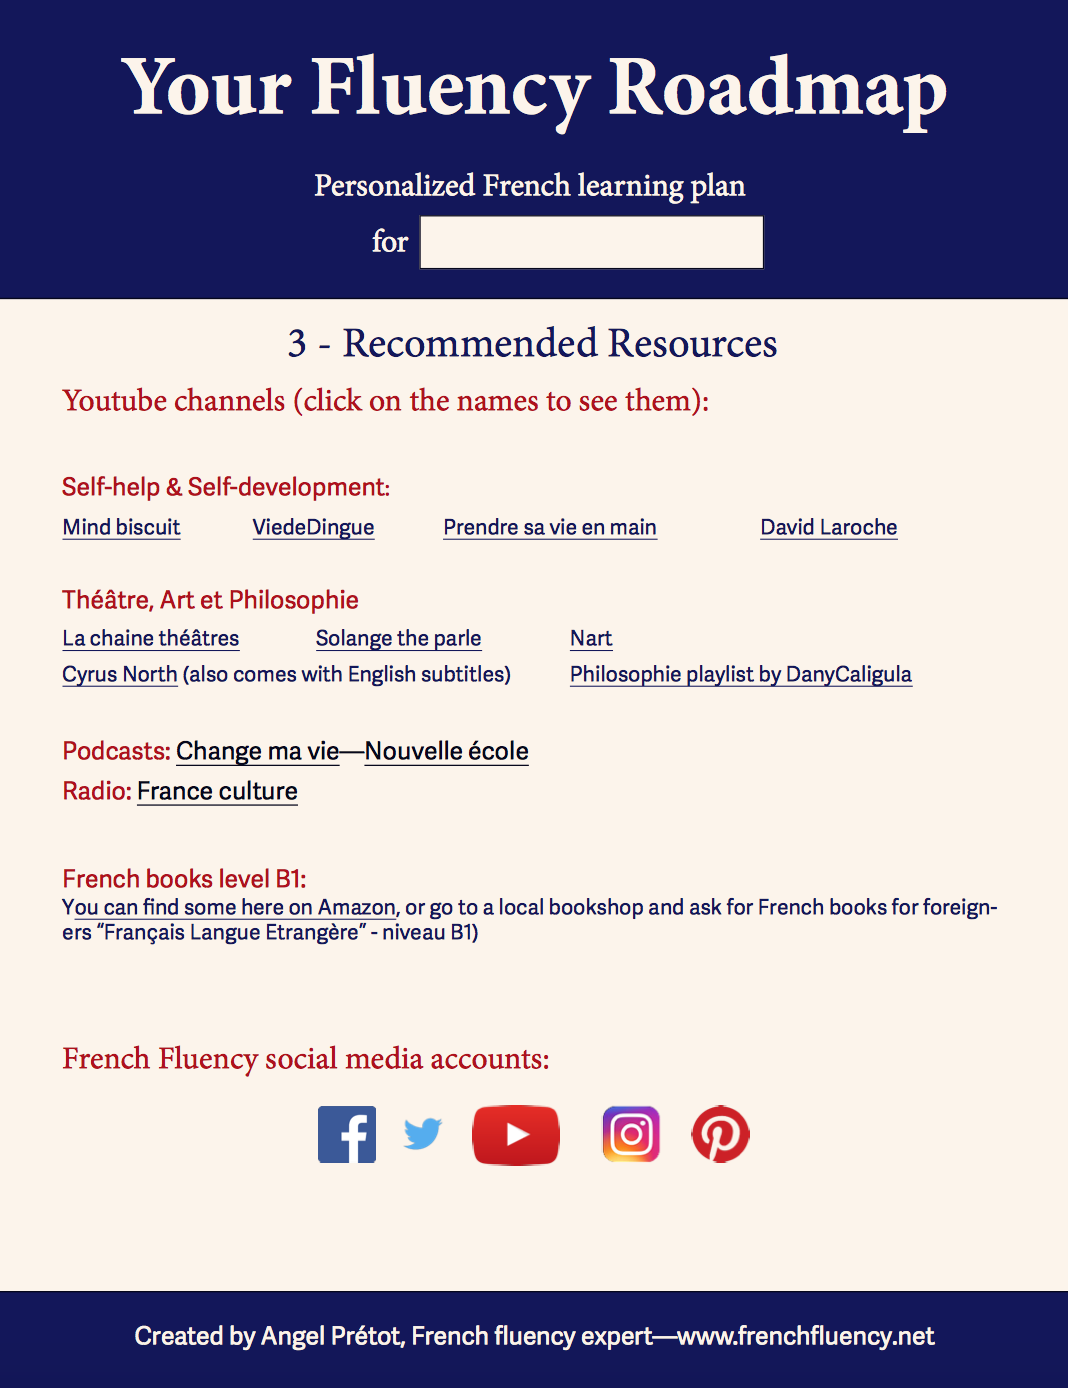 French fluency roadmap p3.png